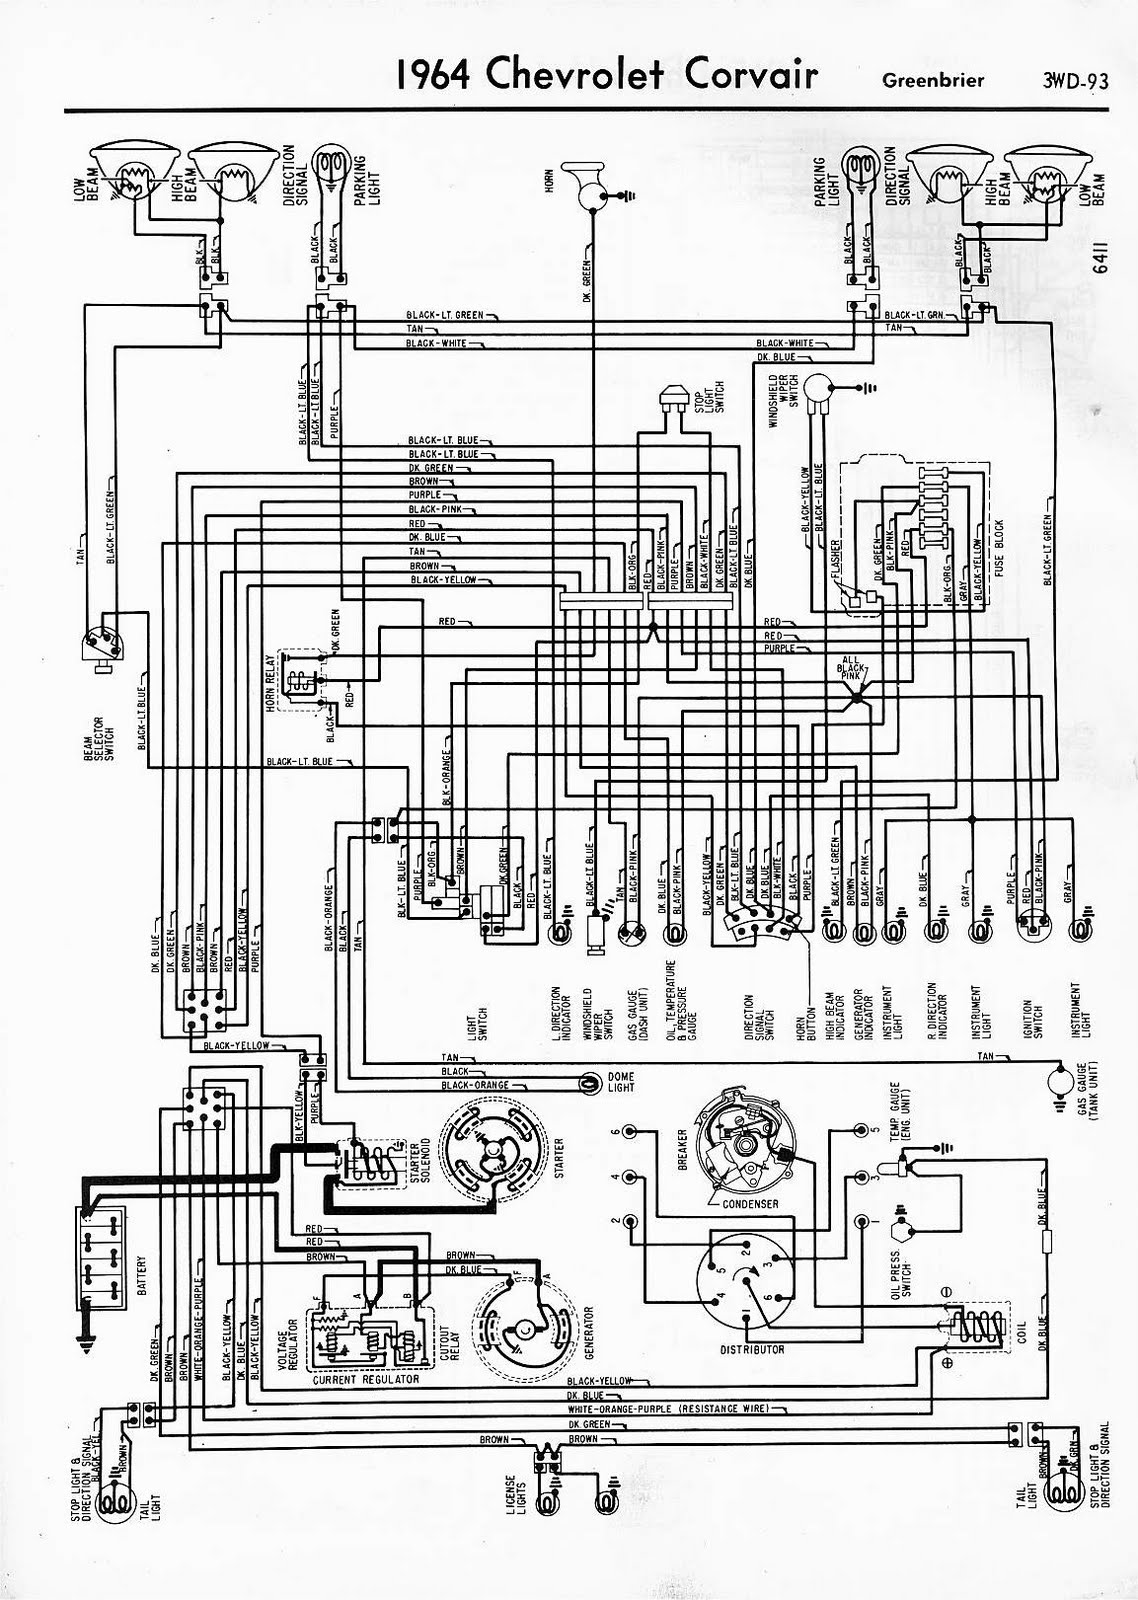 63 corvair wiring diagram wiring diagrams long63 corvair wiring diagram wiring diagram blog 63 corvair wiring [ 1138 x 1600 Pixel ]